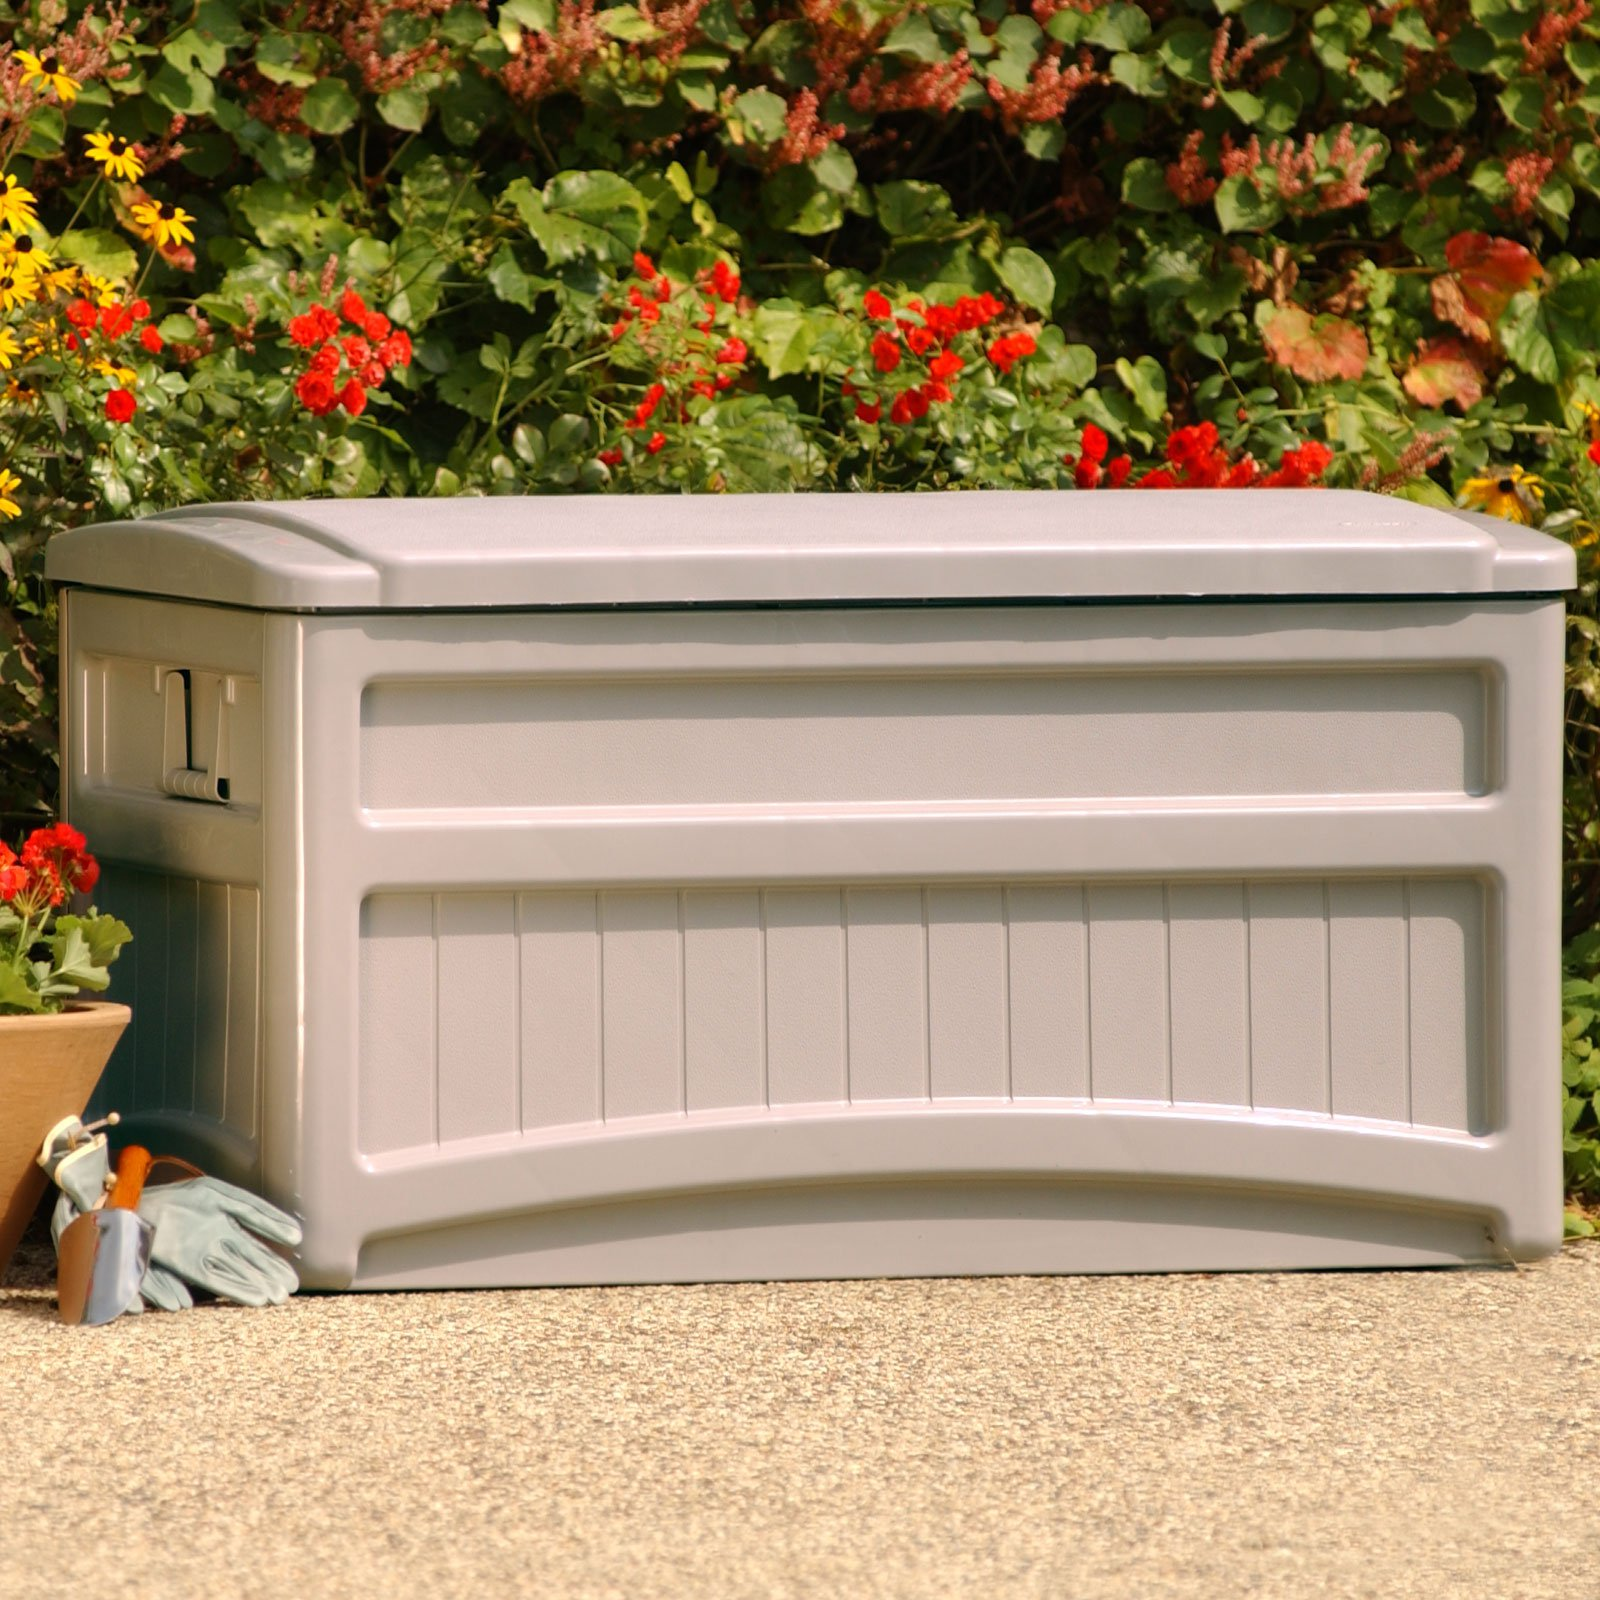 Suncast Saxon Premium 73 Gallon Light Taupe Resin Deck Box with Wheels DB7000W